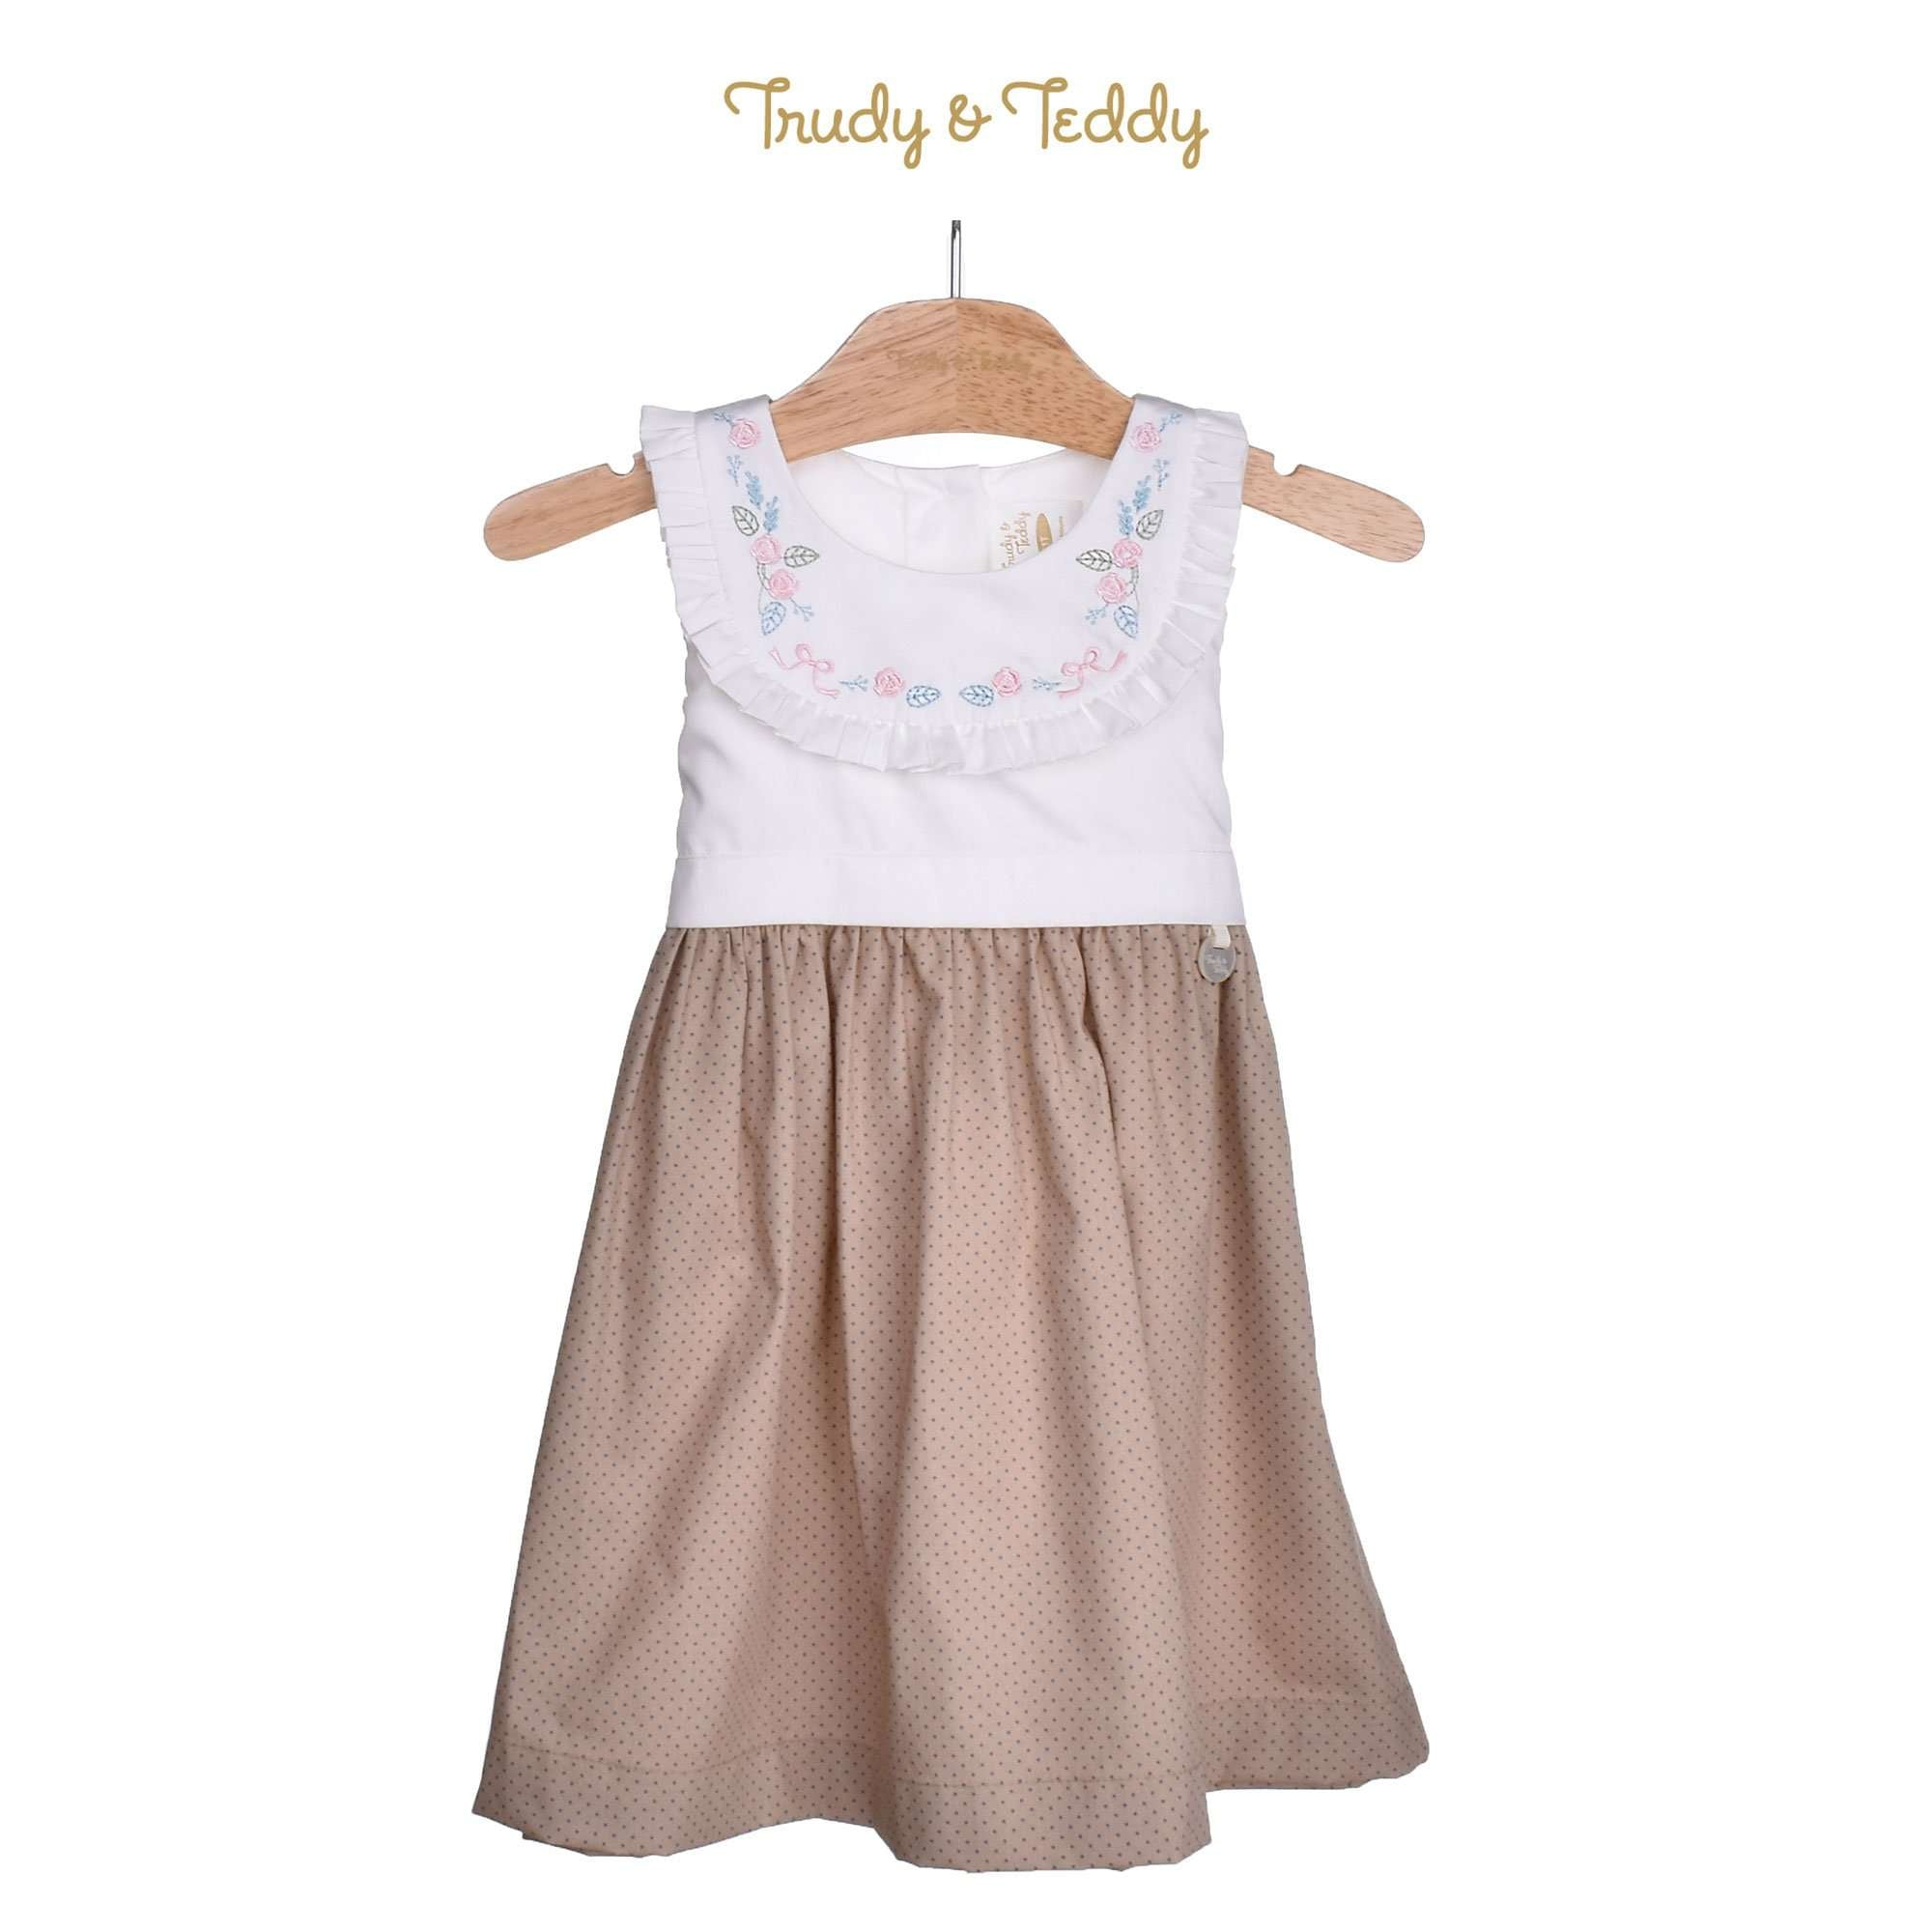 Trudy & Teddy Toddler Girl Woven Sleeveless Dress 815120-311 : Buy Trudy & Teddy online at CMG.MY